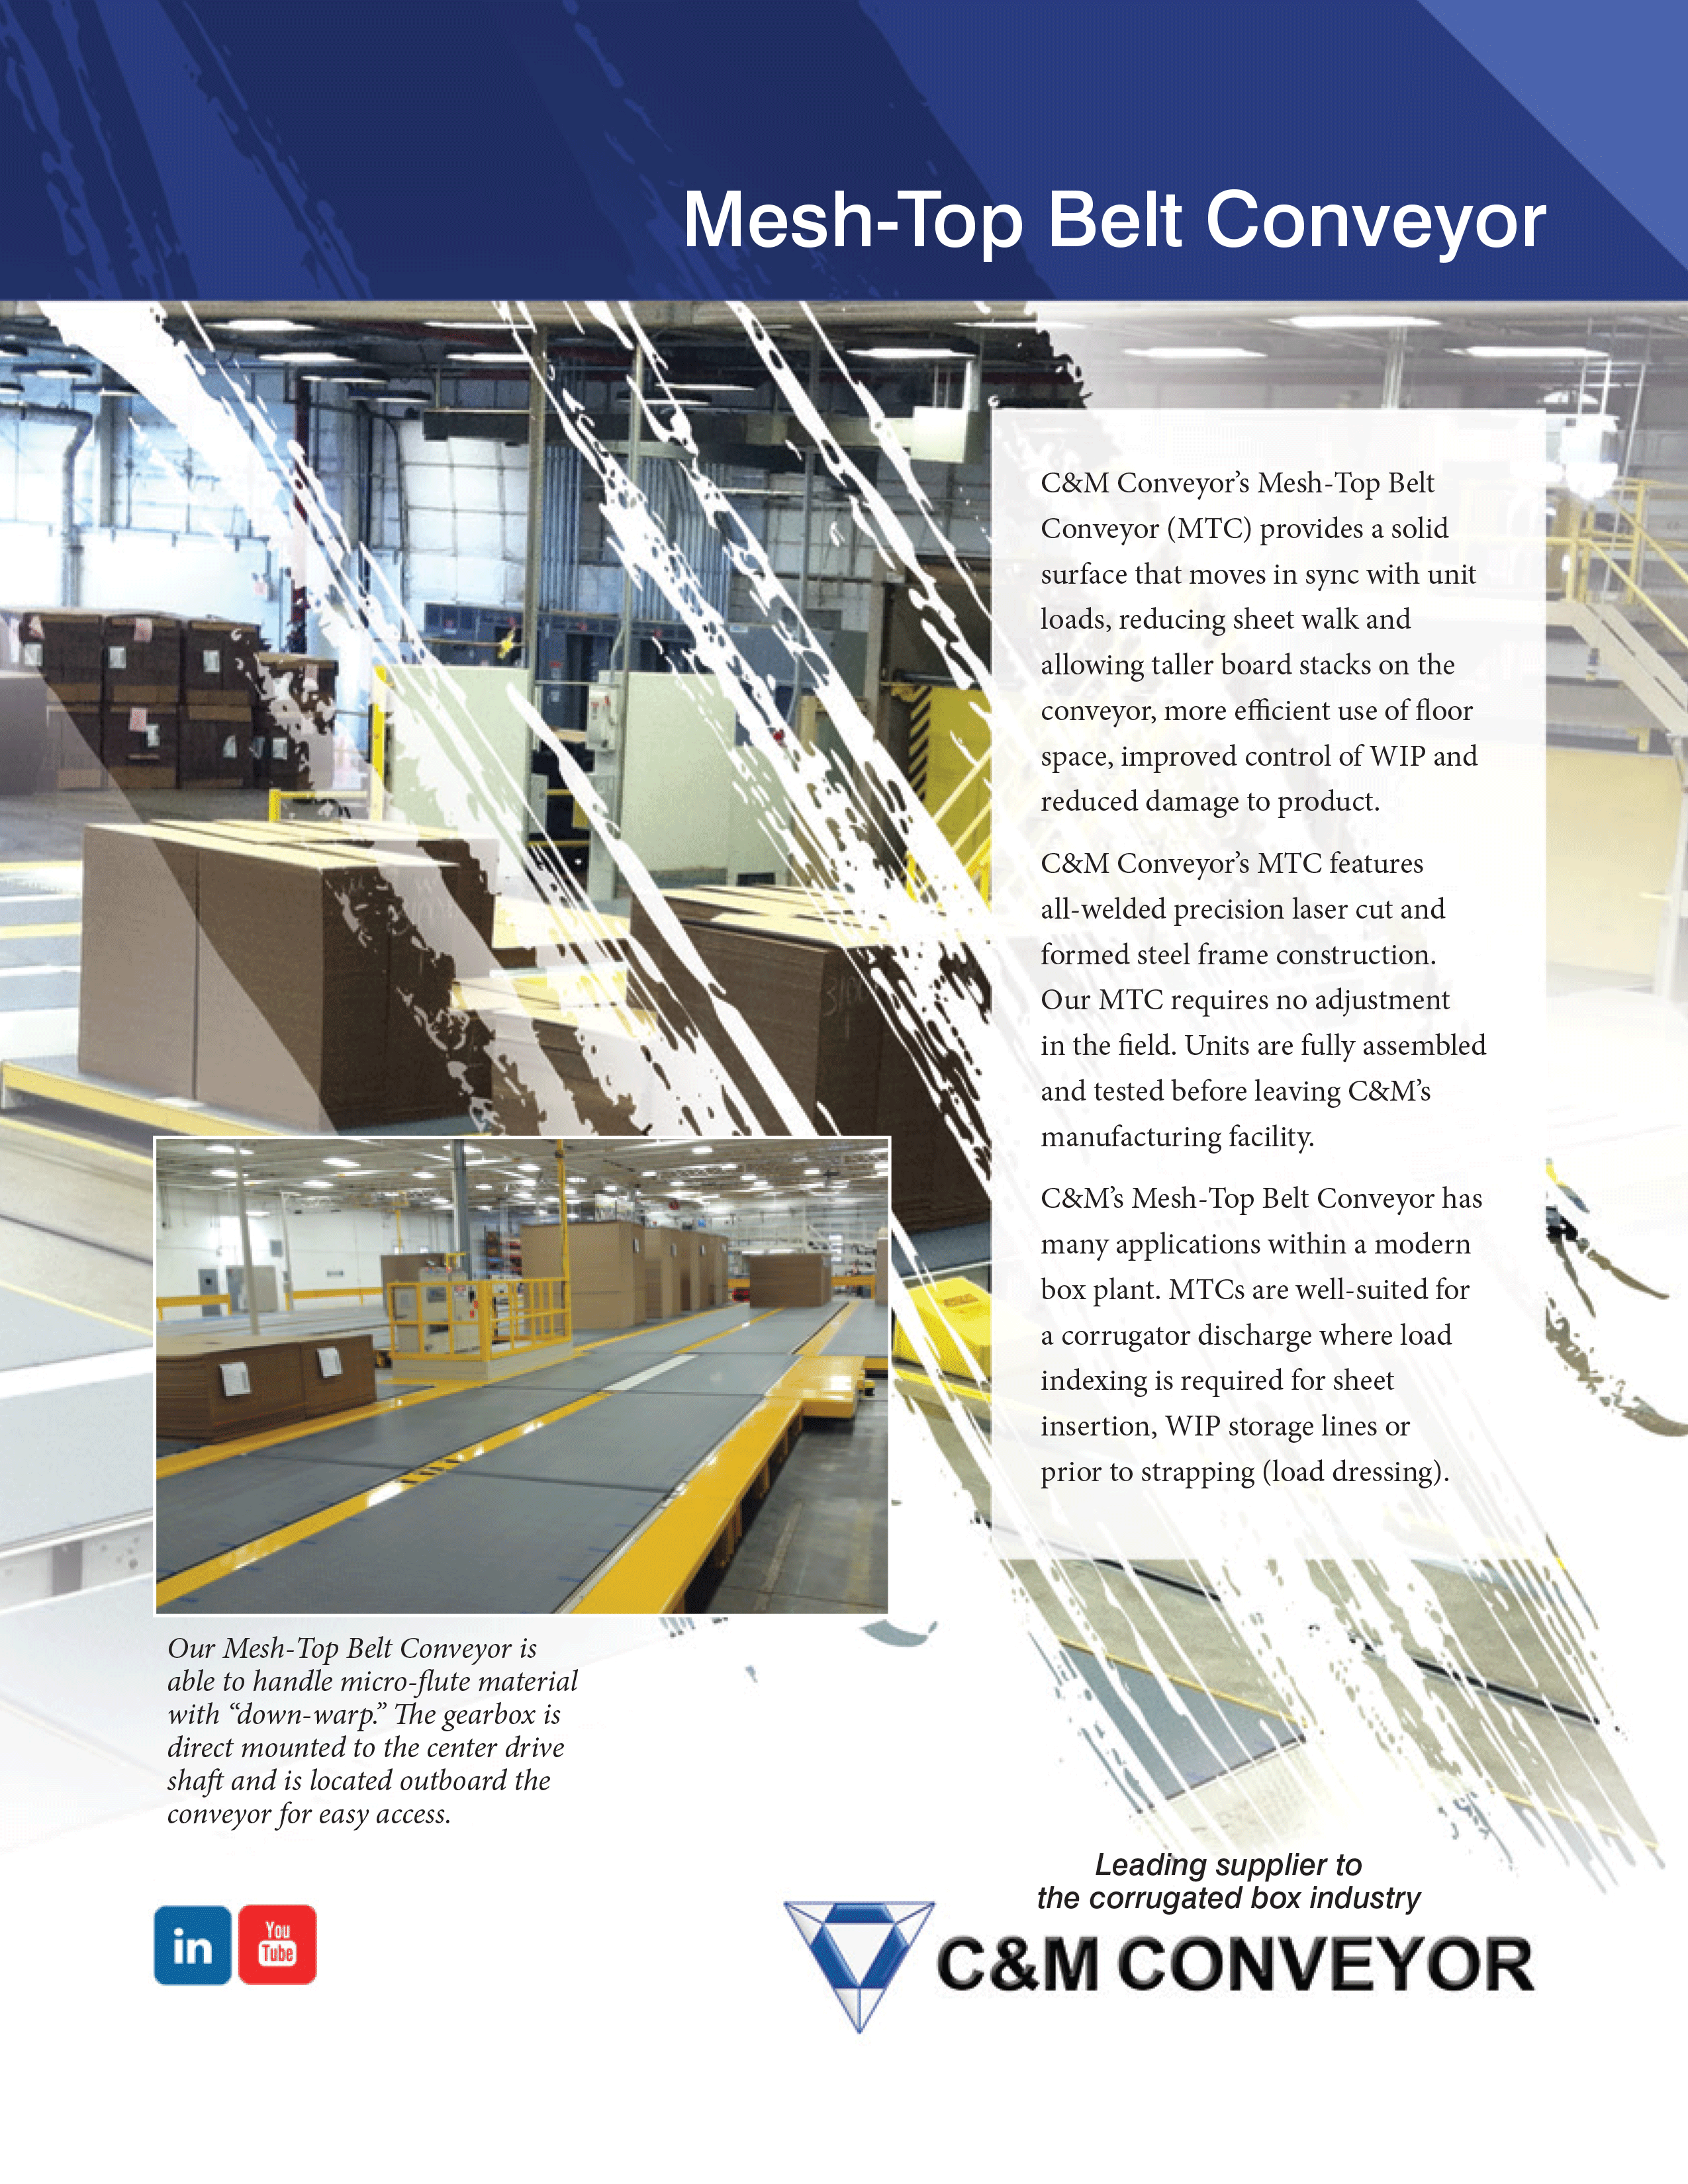 Learn more with C & M's Mesh-Top Belt Conveyor Brochure